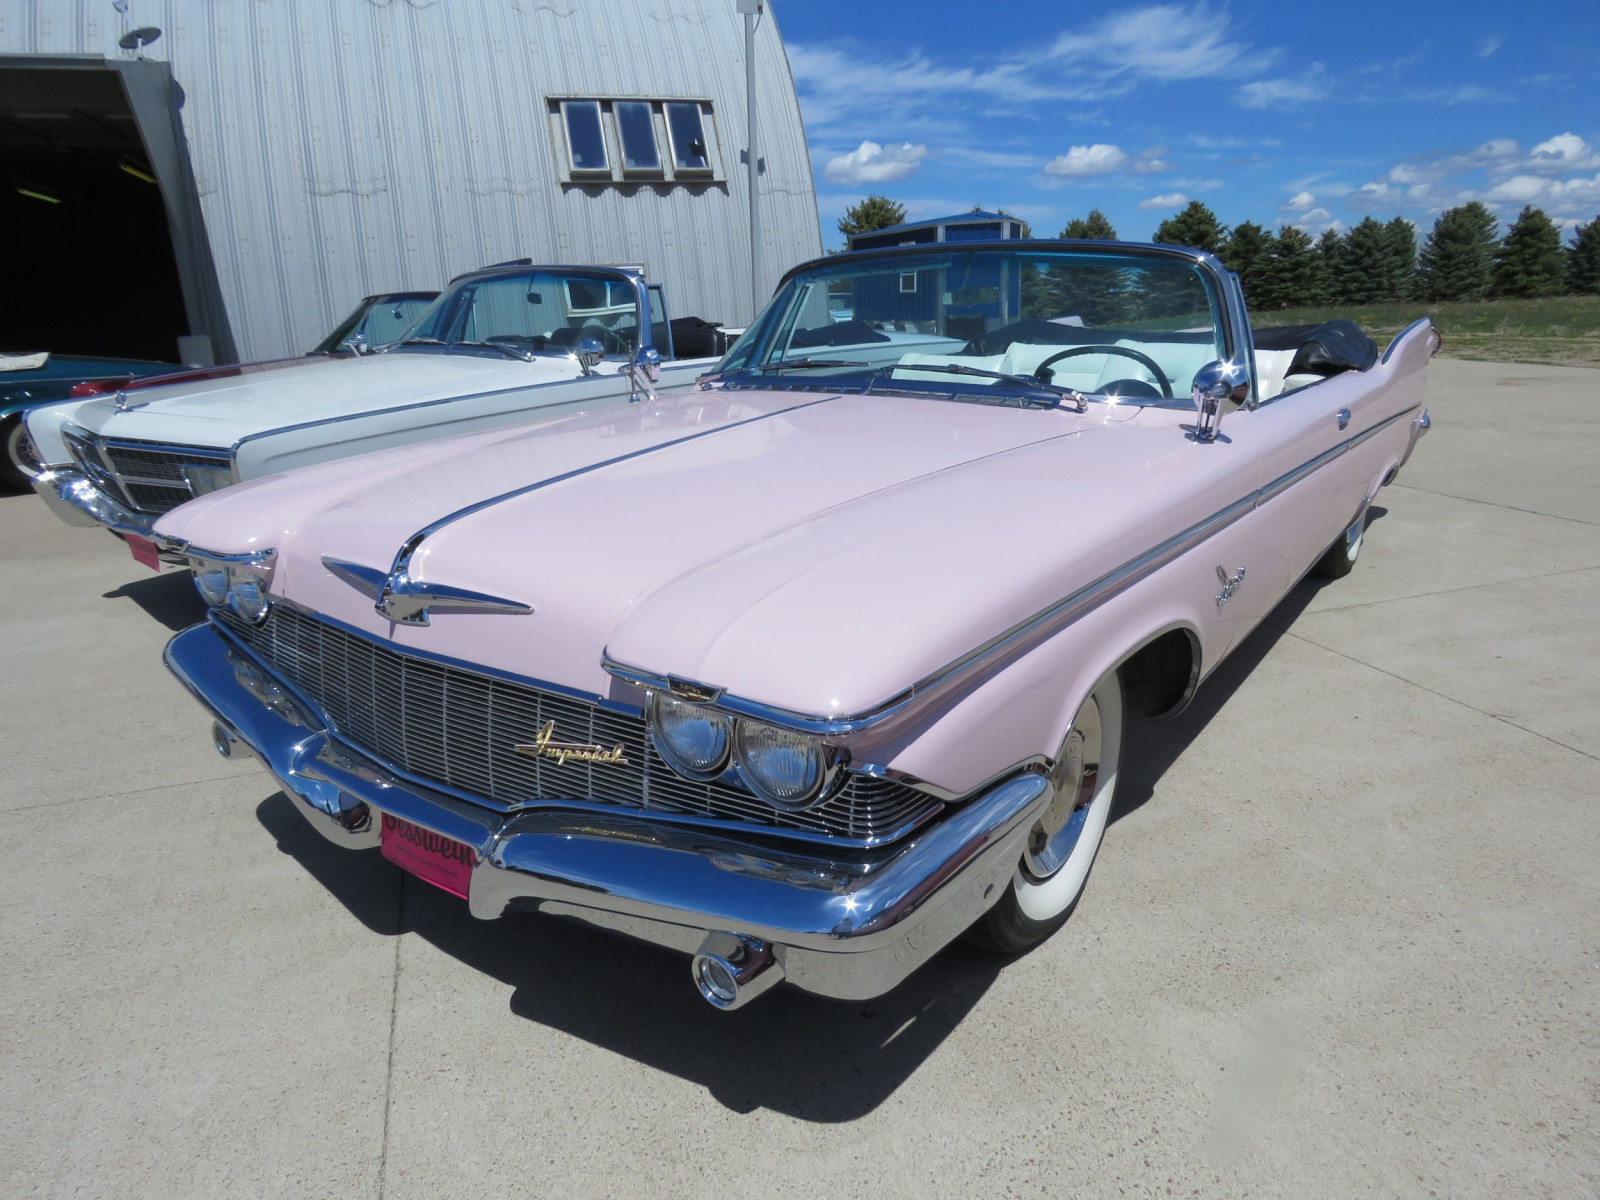 RARE 1960 Chrysler Imperial Crown Convertible - Image 1